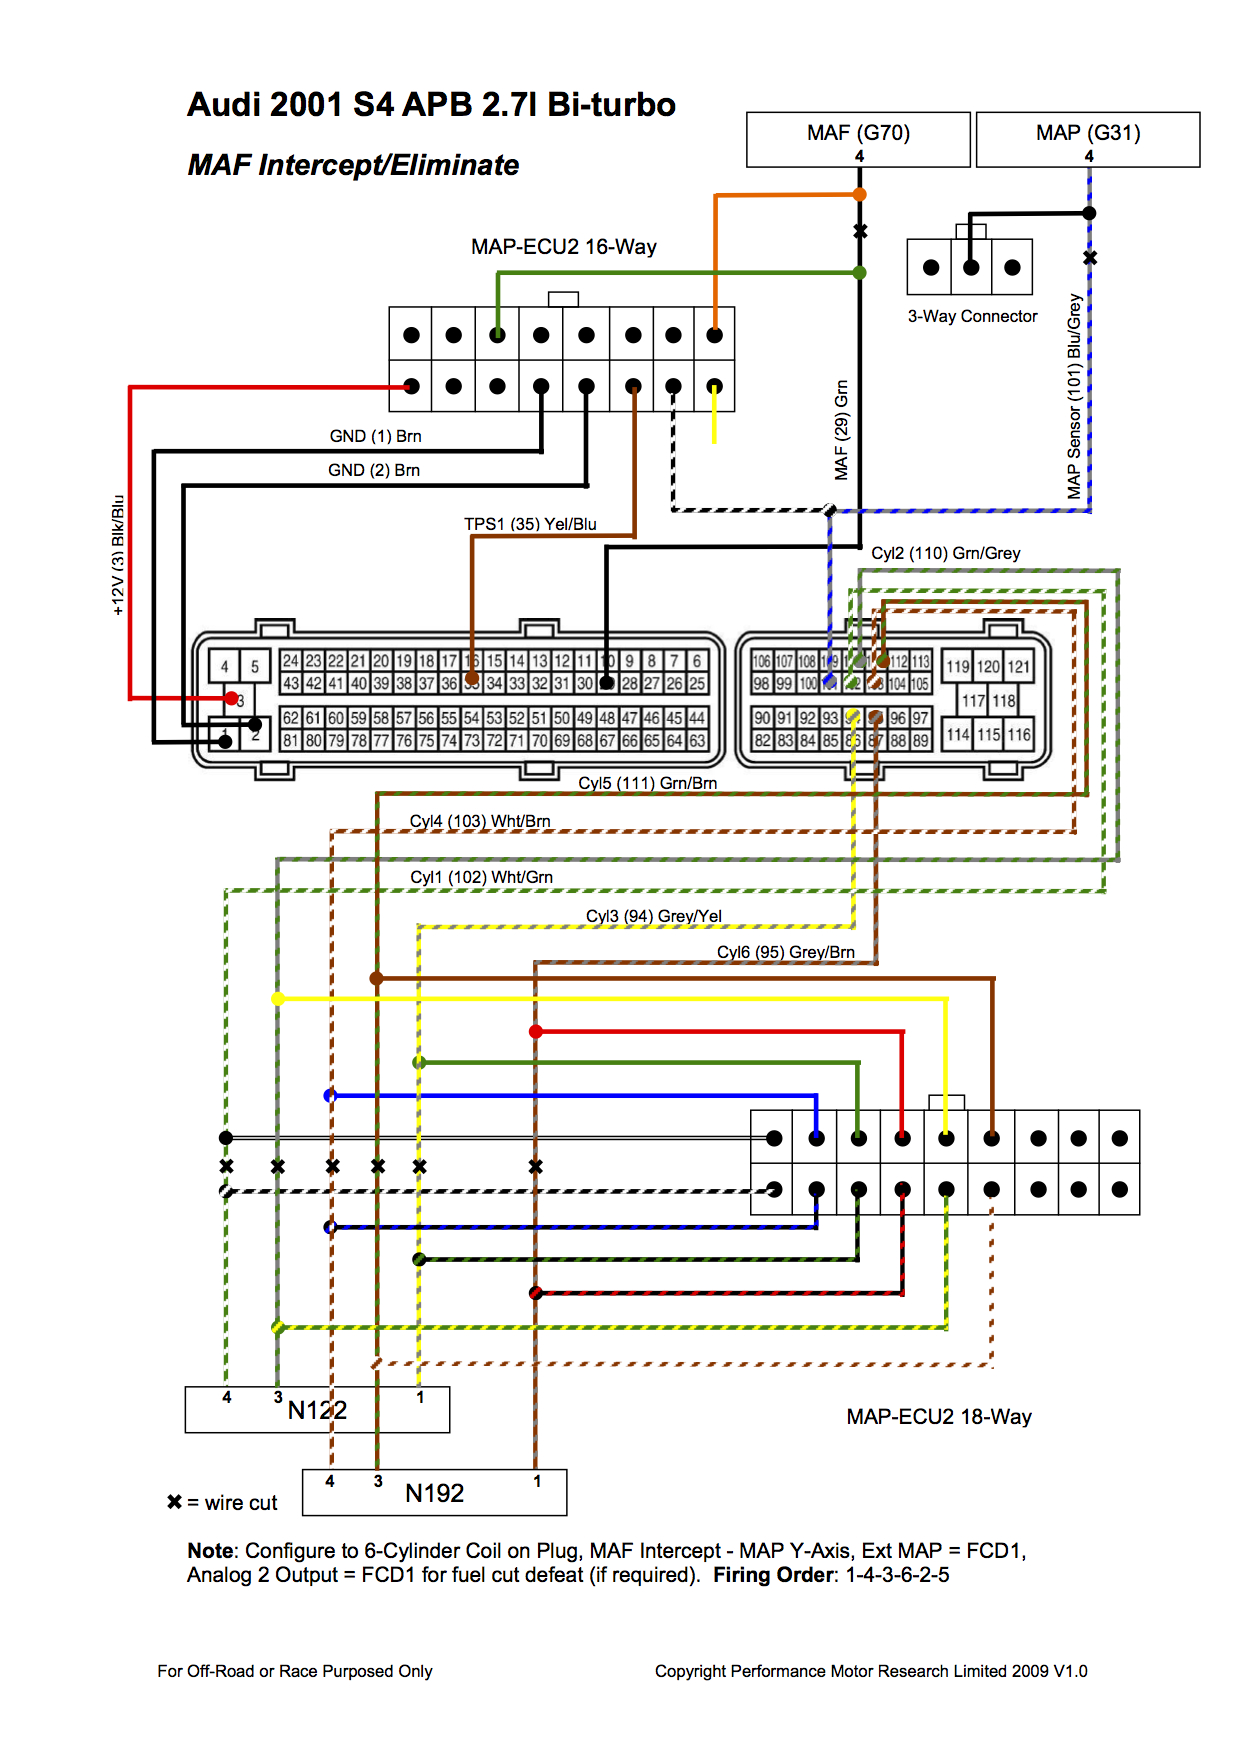 Audi S4 20011 ecu wiring diagram paccar ecu wiring diagram \u2022 wiring diagrams j 2002 Audi S4 at bakdesigns.co